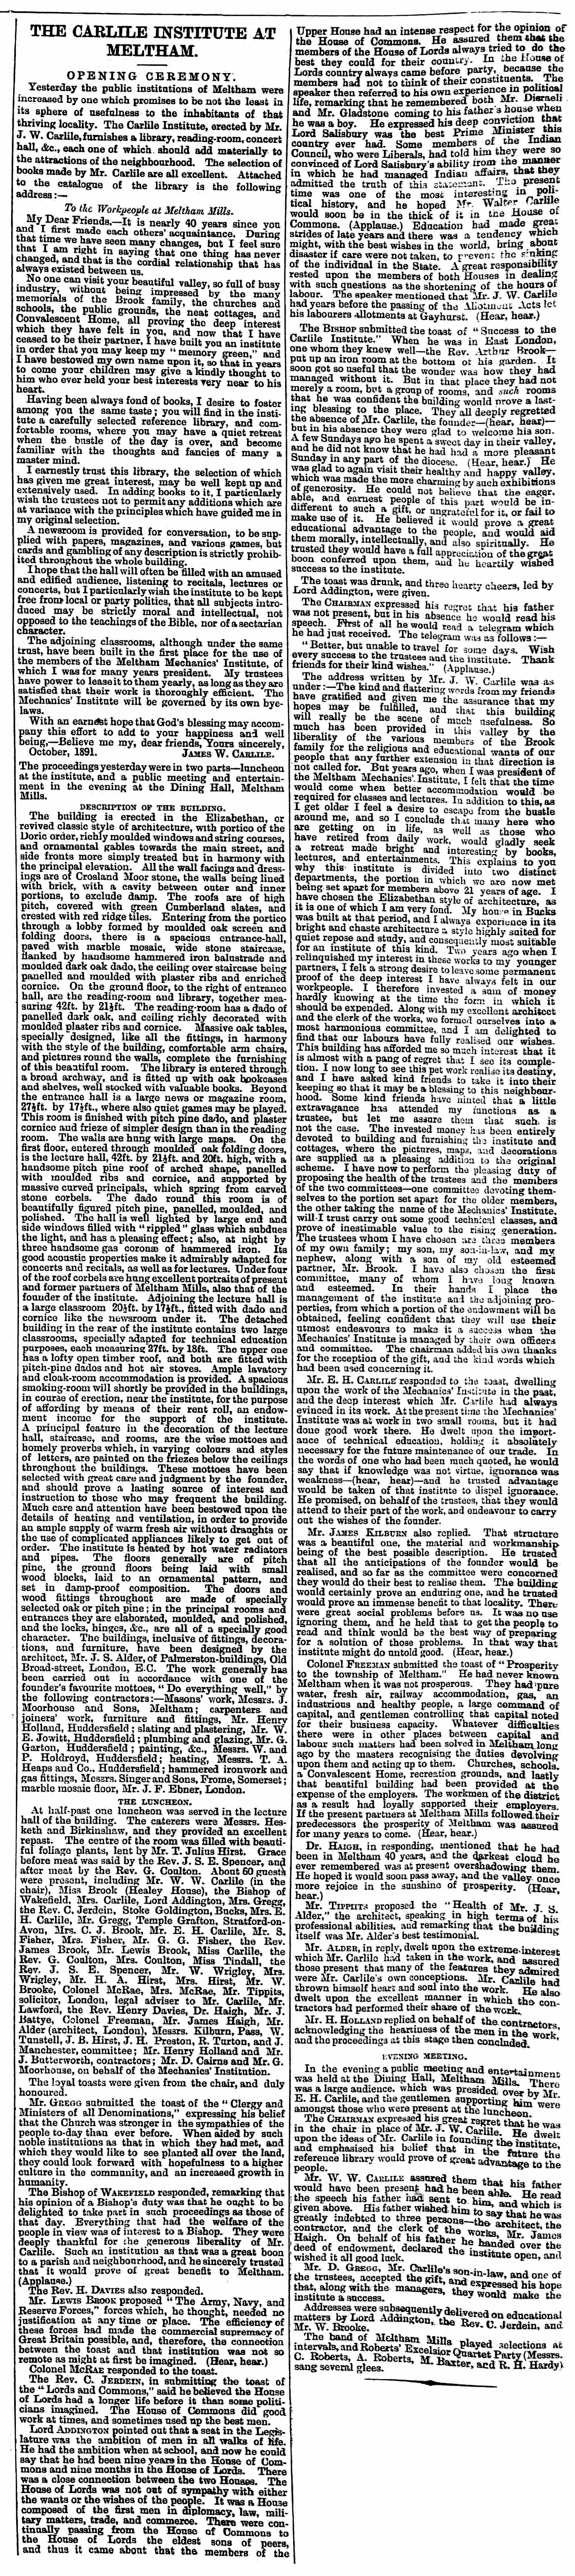 1891.10.17-Carlile-Institute-at-Meltham-Huddersfield-Chronicle-17-October-1891.png